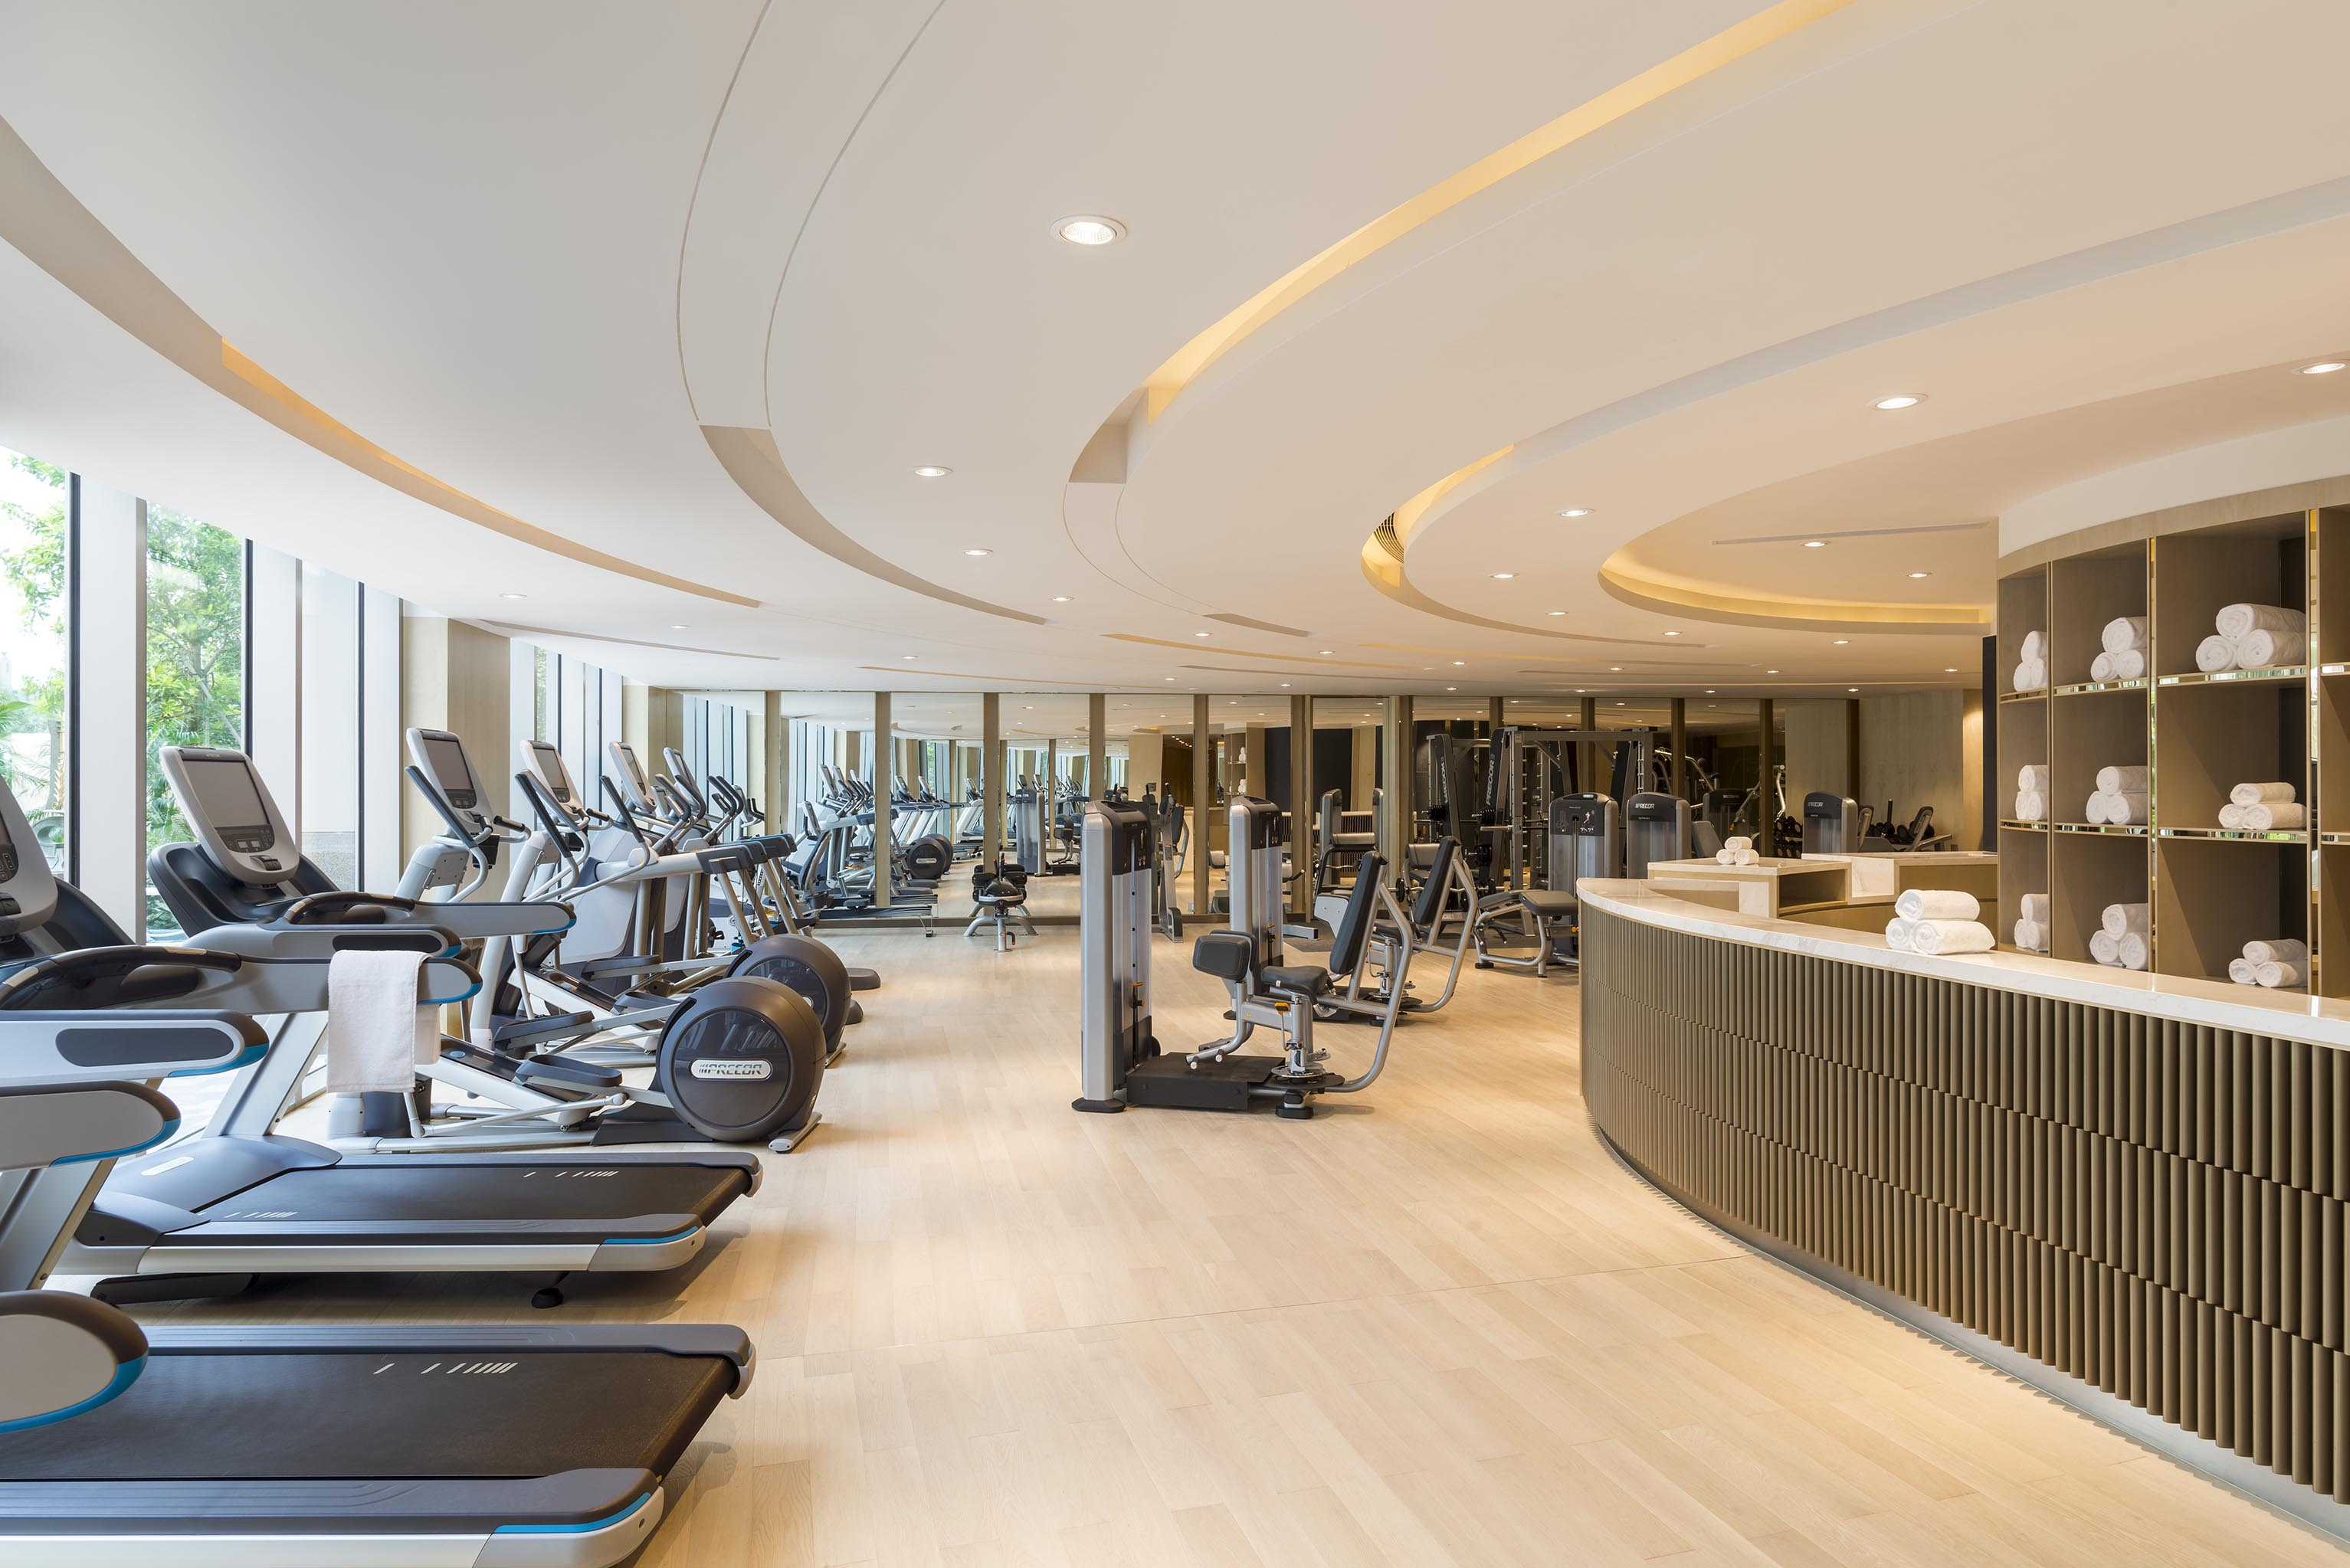 Studio City Gym Interior